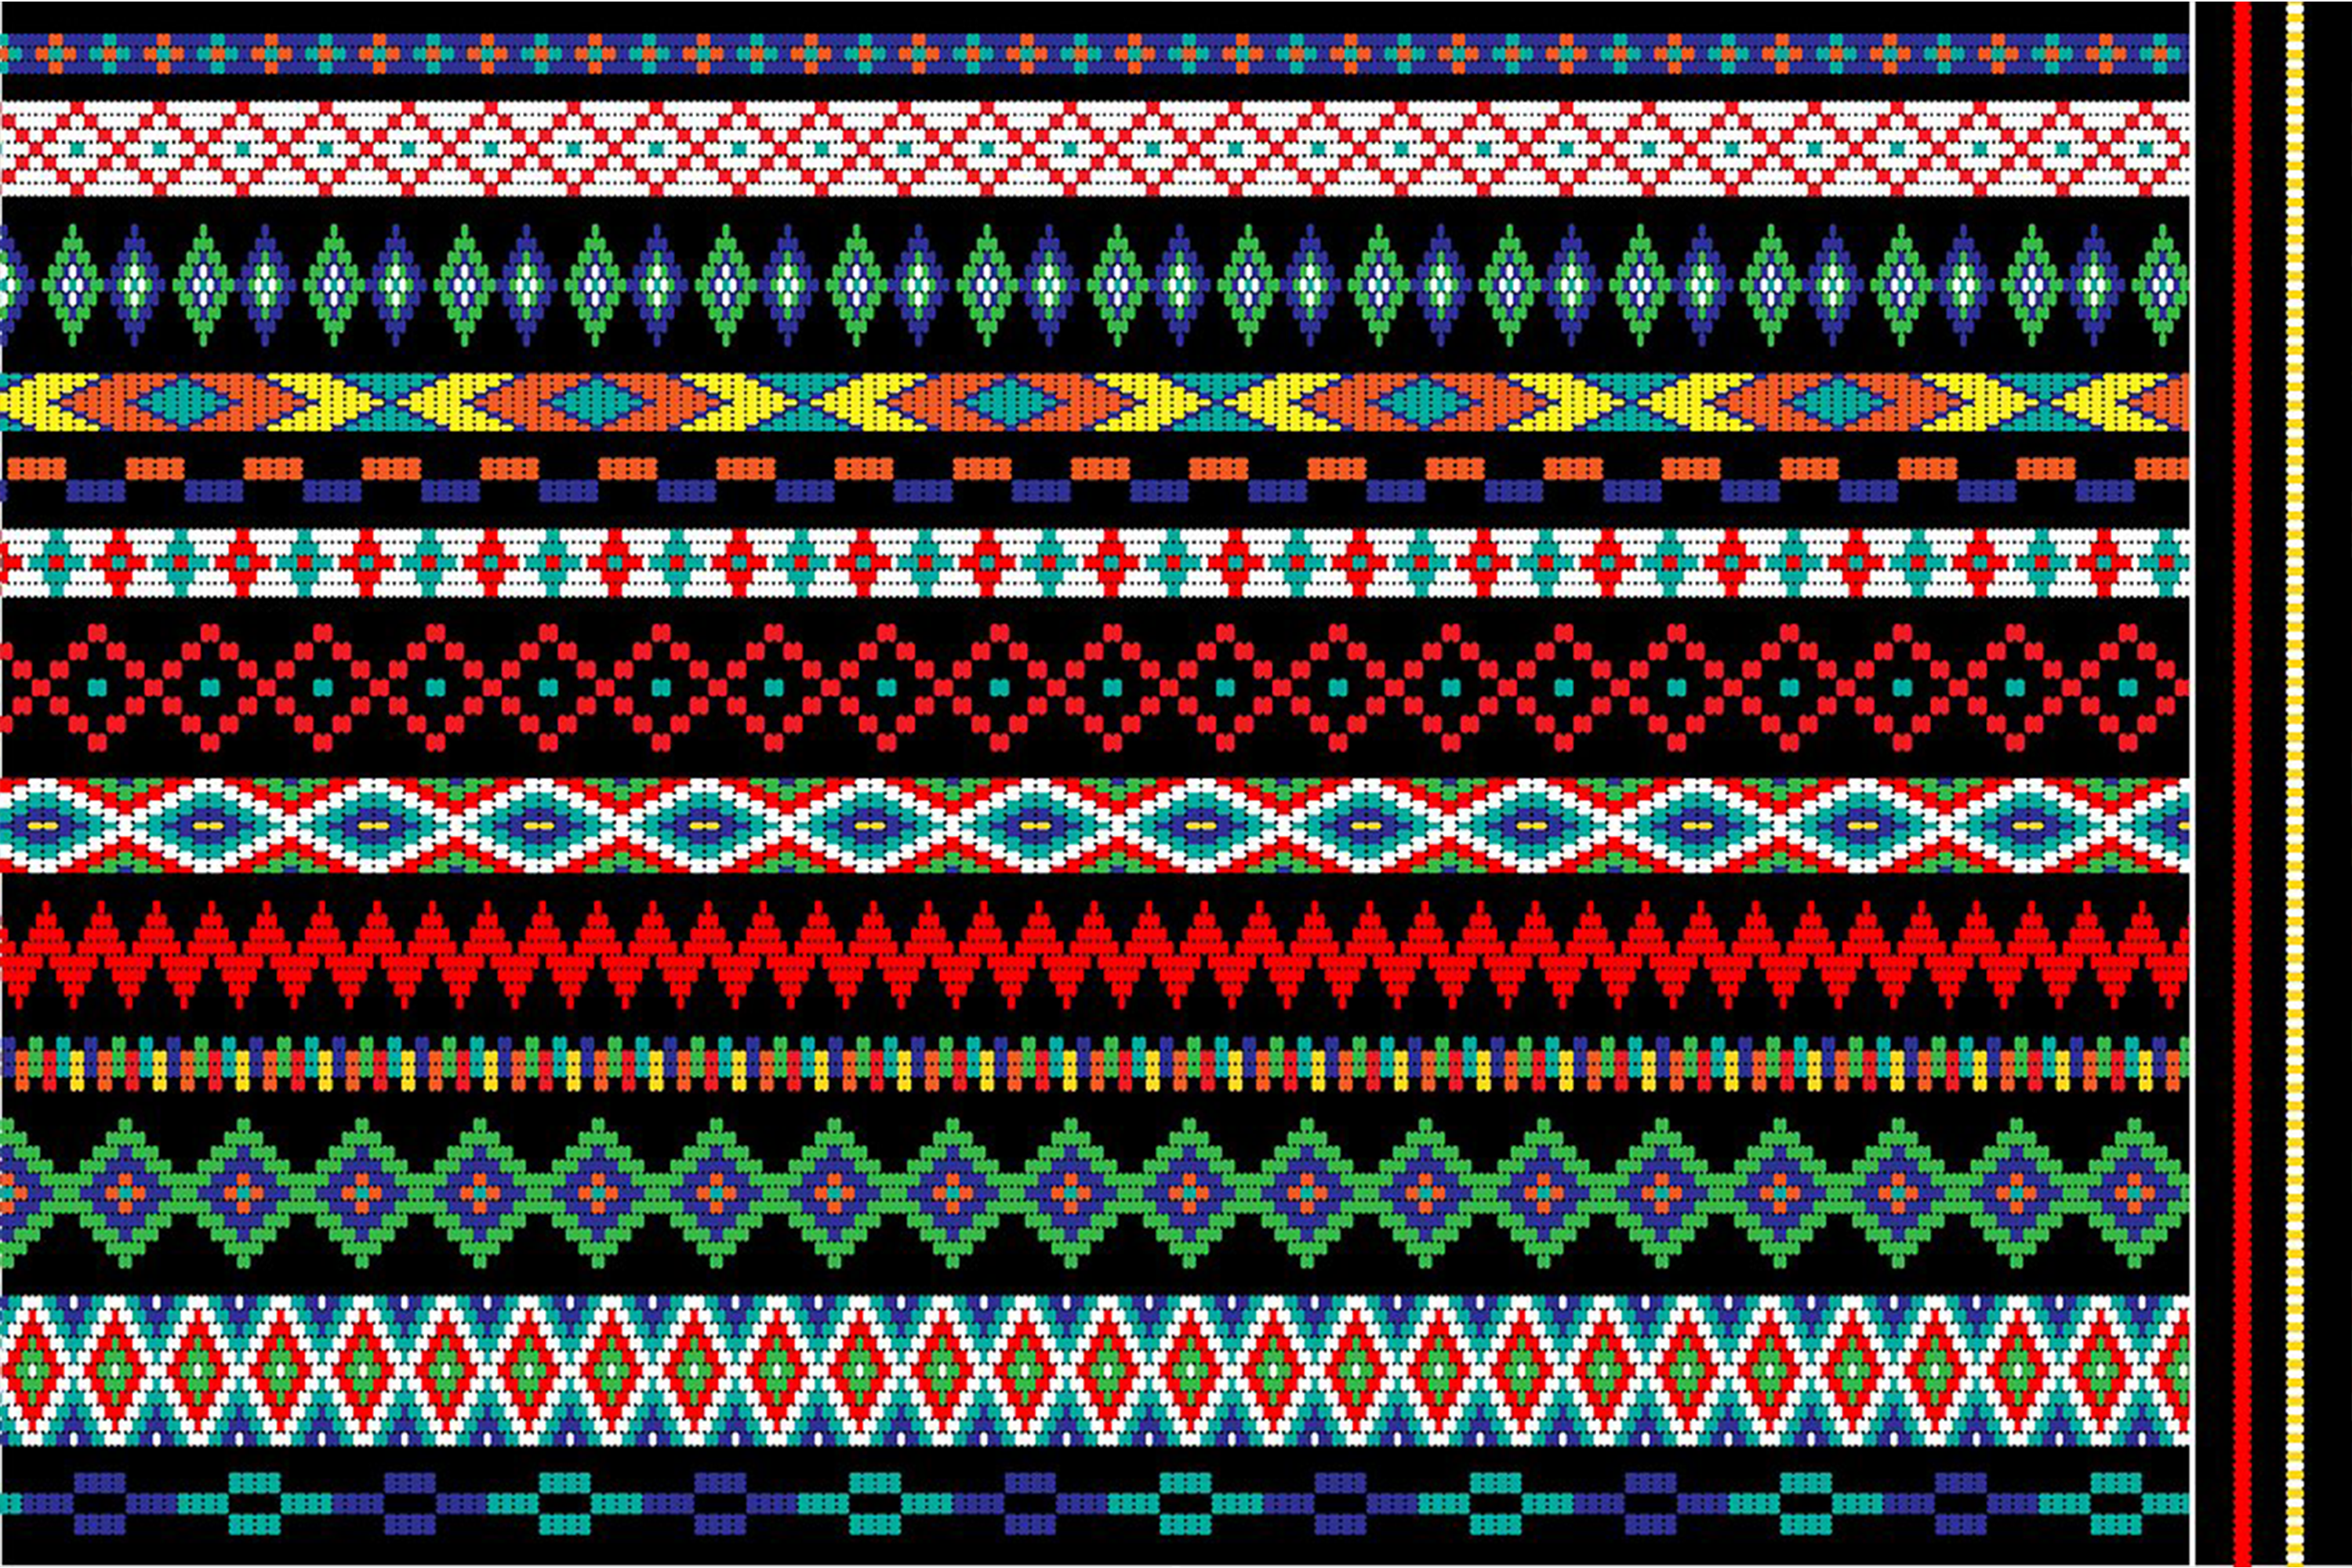 Native American Beaded Border Patterns example image 2